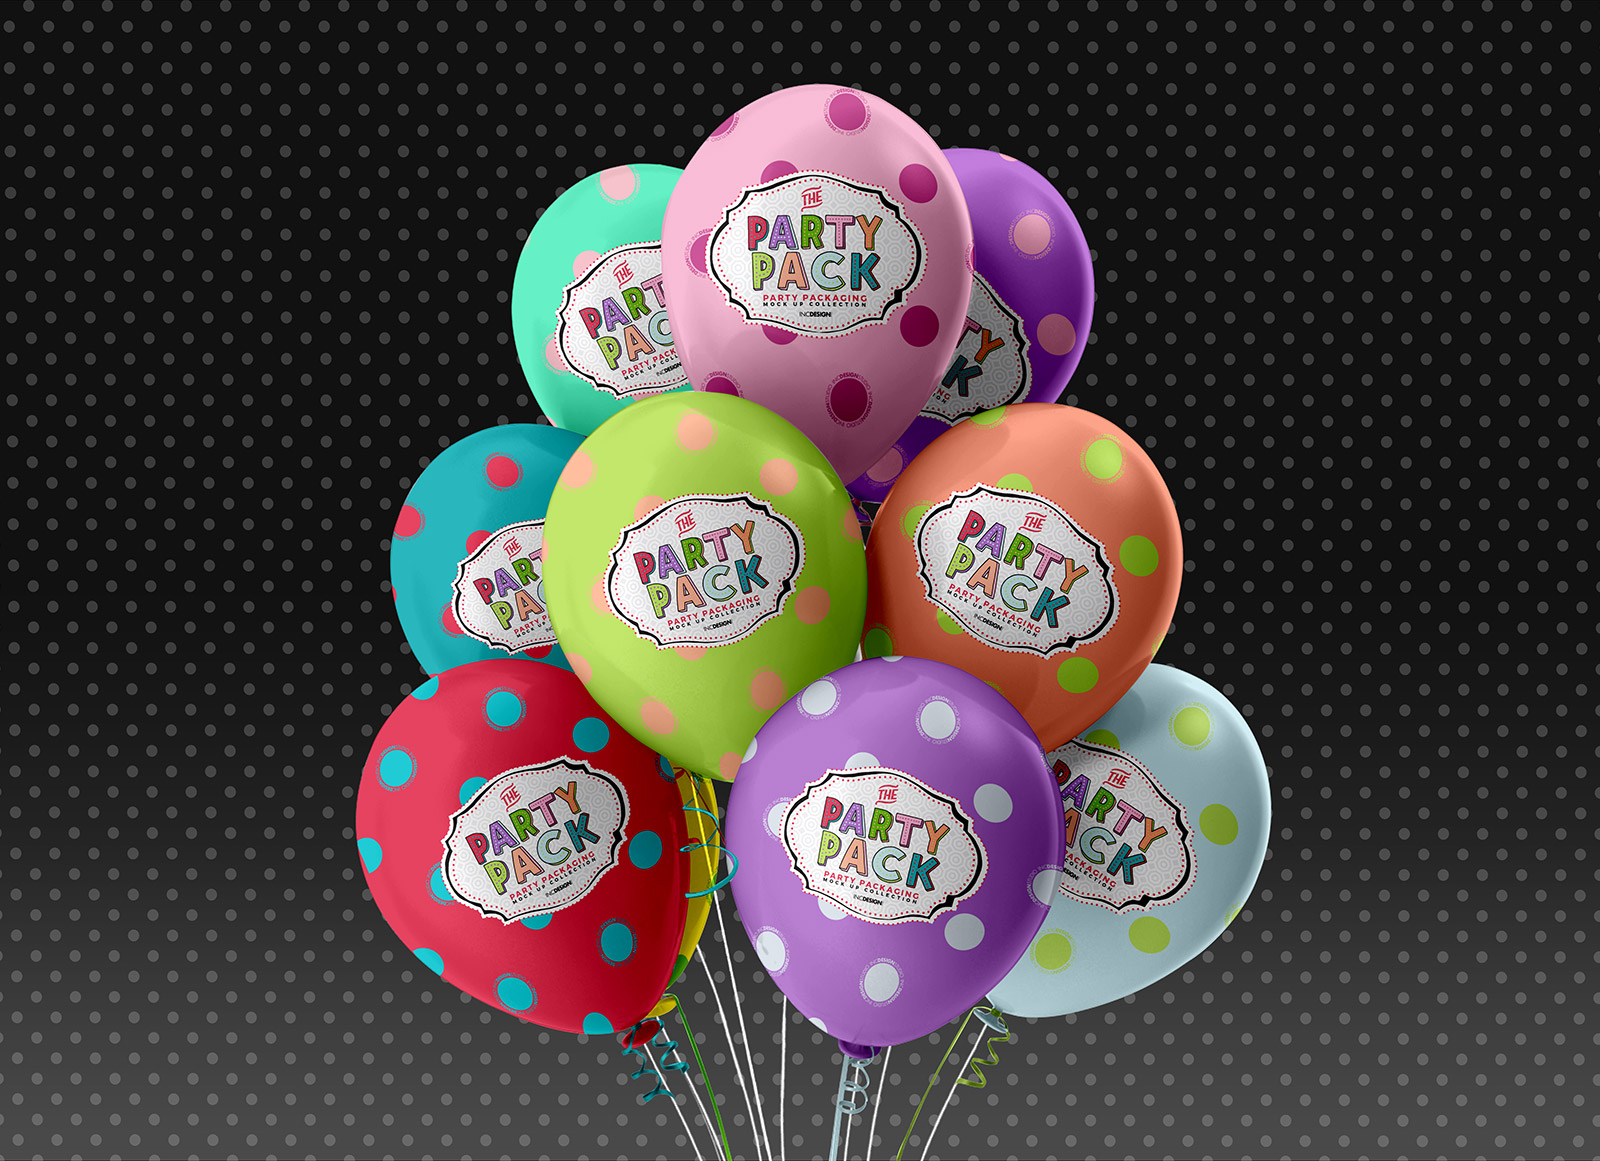 Free-Party-Baloons-mockup-PSD